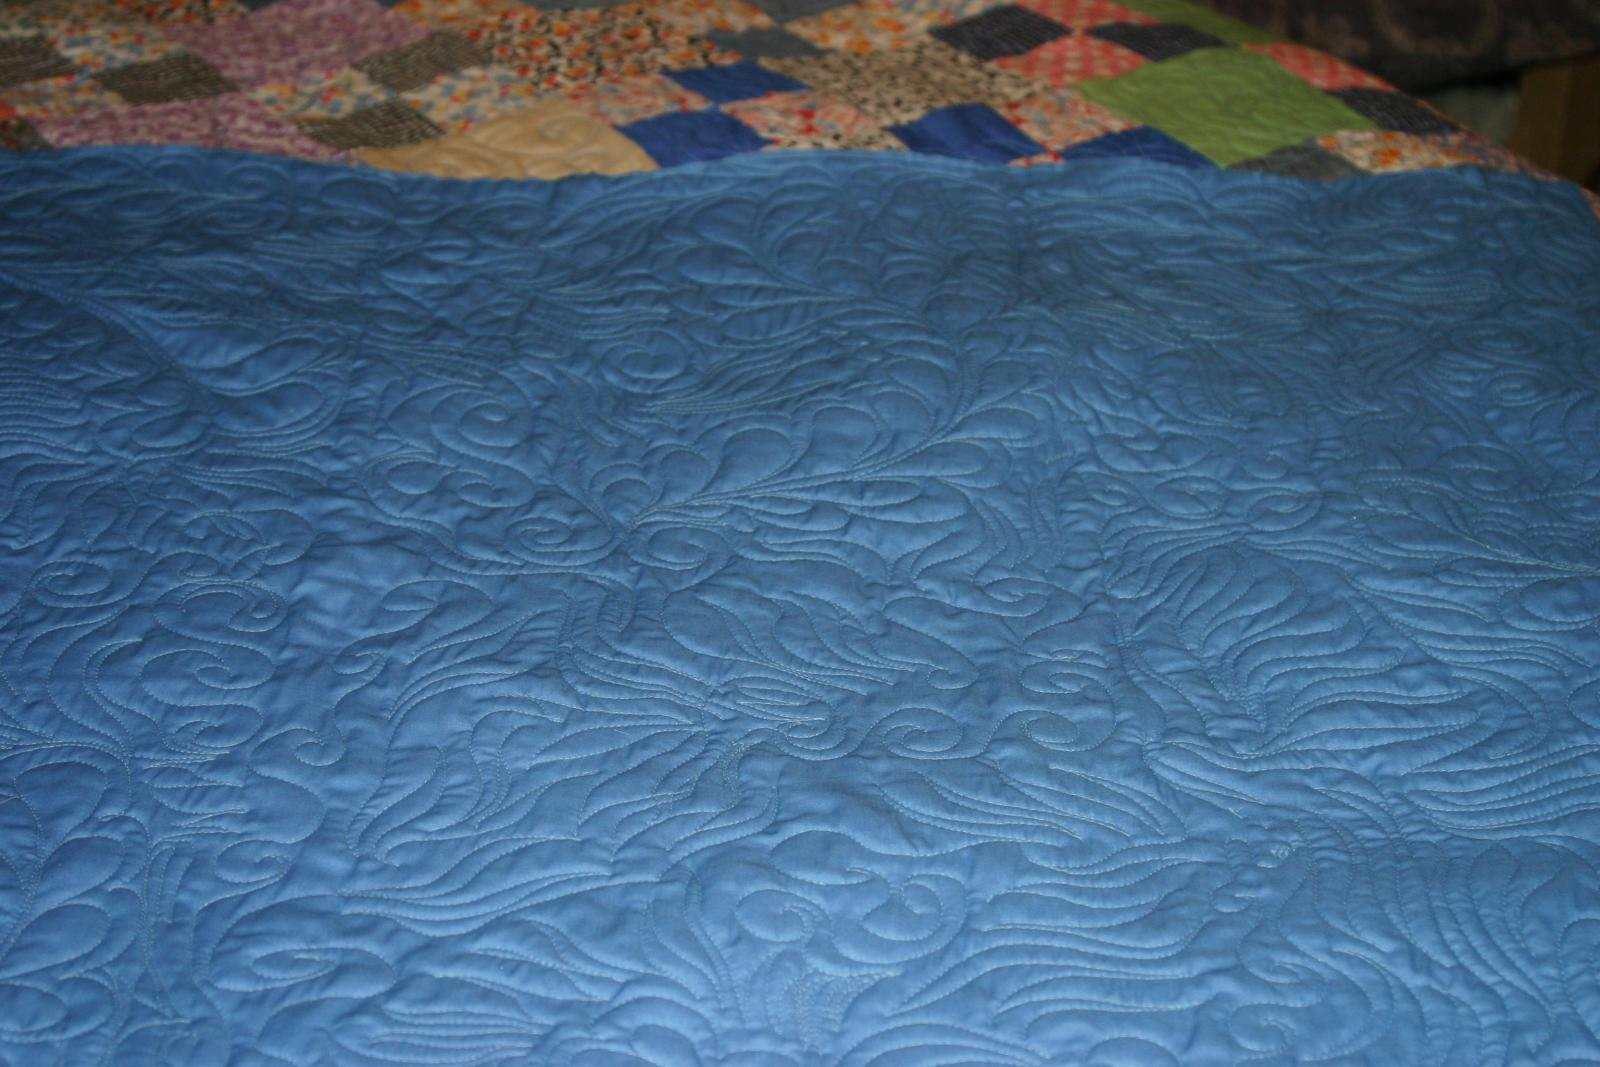 back showing quilting detail.